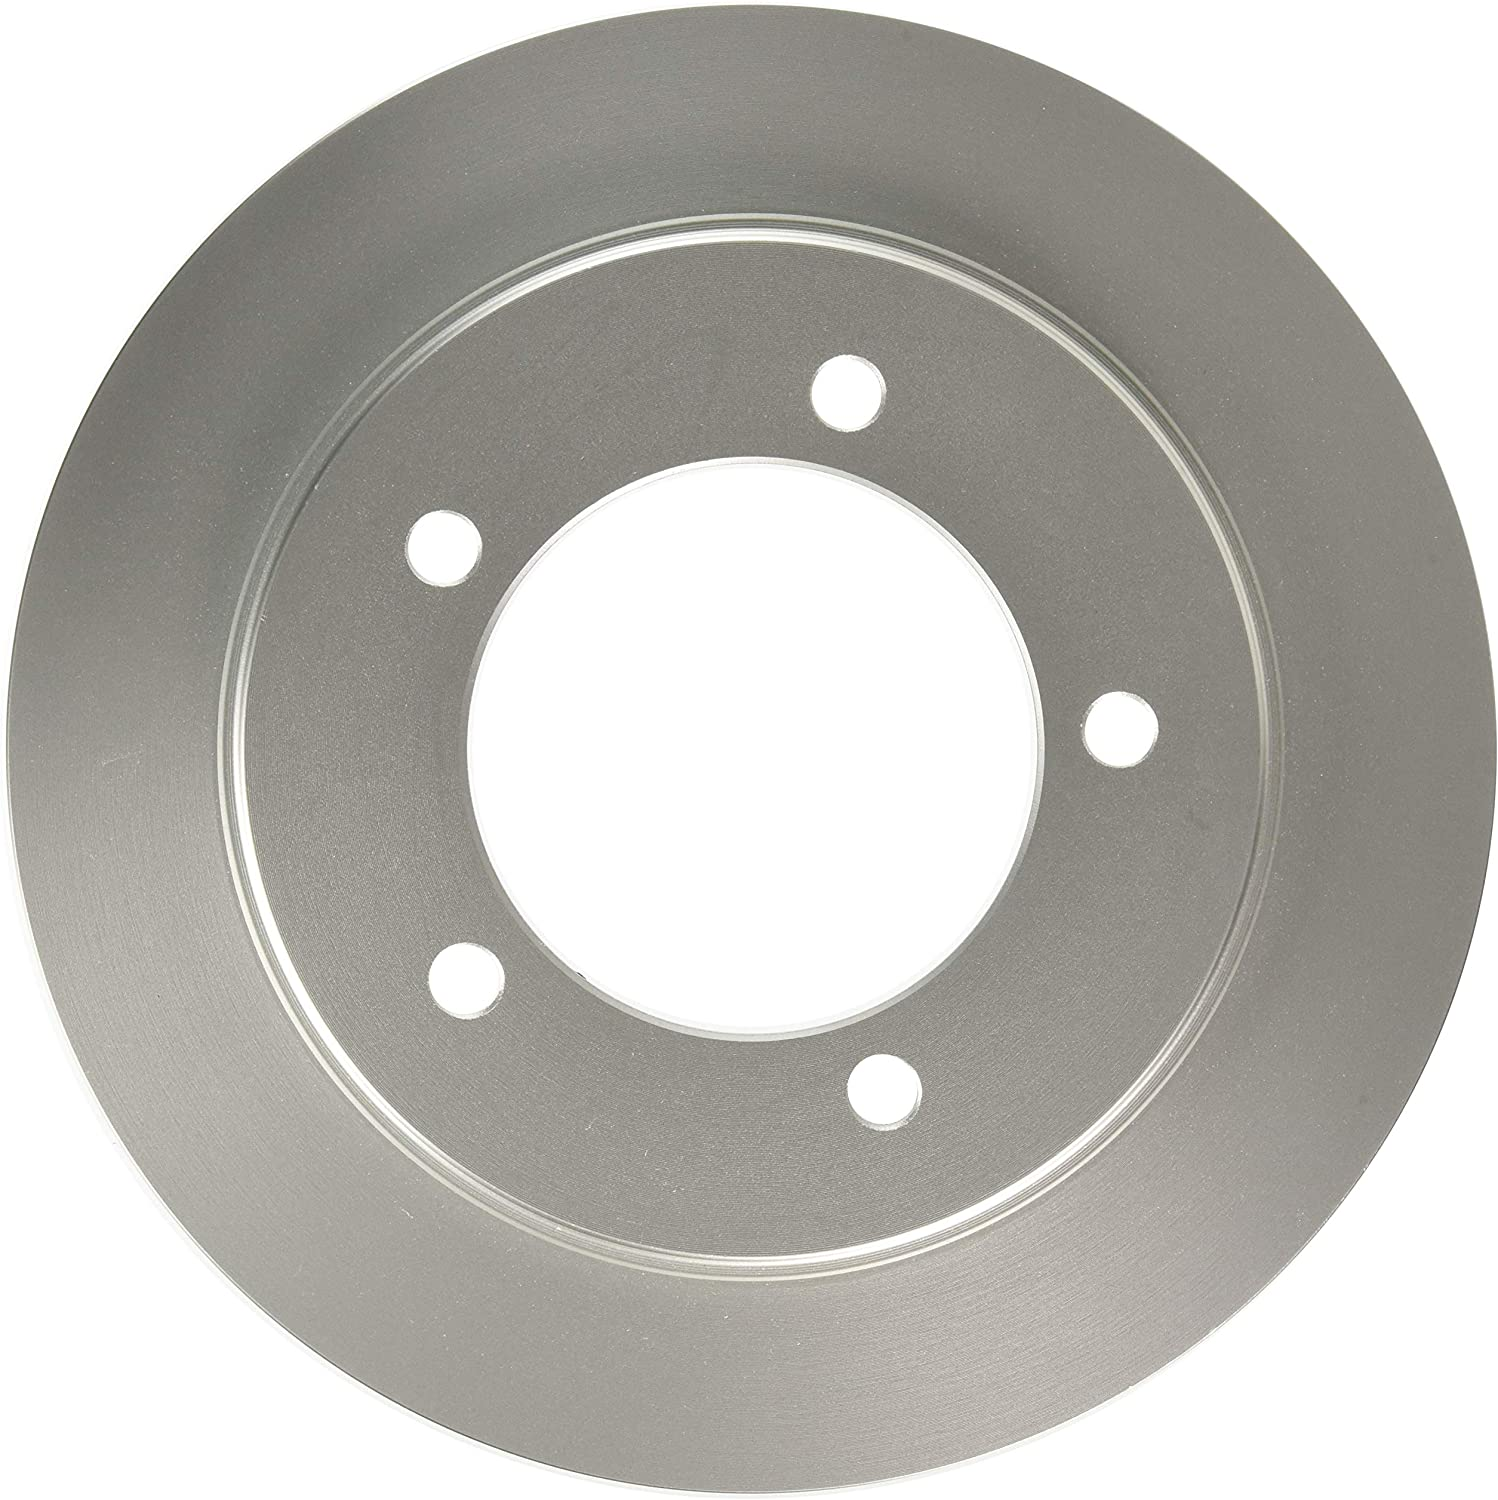 Raybestos 56927FZN Rust Prevention Brake Rotor Max 41% OFF Technology Gorgeous Coated